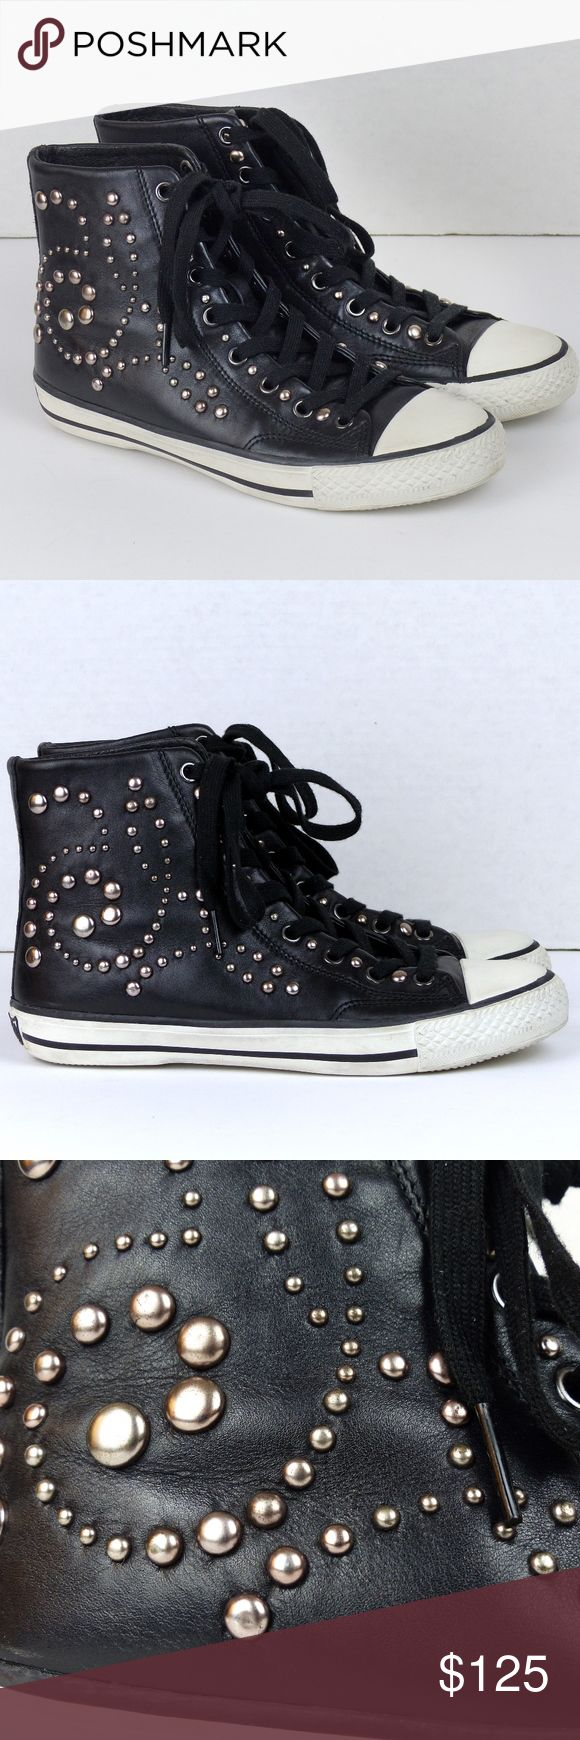 Ash Studded Hi-top Lace-up Leather Sneakers 38/ 7 Slightly worn, Ash Round Studded Swirl design hi-top leather lace-up sneakers. Cool for the rocking bad ass gal!  ❌Slight dirty areas around while sole. Minimal scratches on studs.   Size/ Measurements: US 7  (true to size) EU 38 UK 5  9 ¾ Insole Length  10 Sole Length 4 ¼ Shaft   Detail: Studs on outer shoe side, tongue and near lace grommets. Clean insole Leather upper Ash Shoes Sneakers